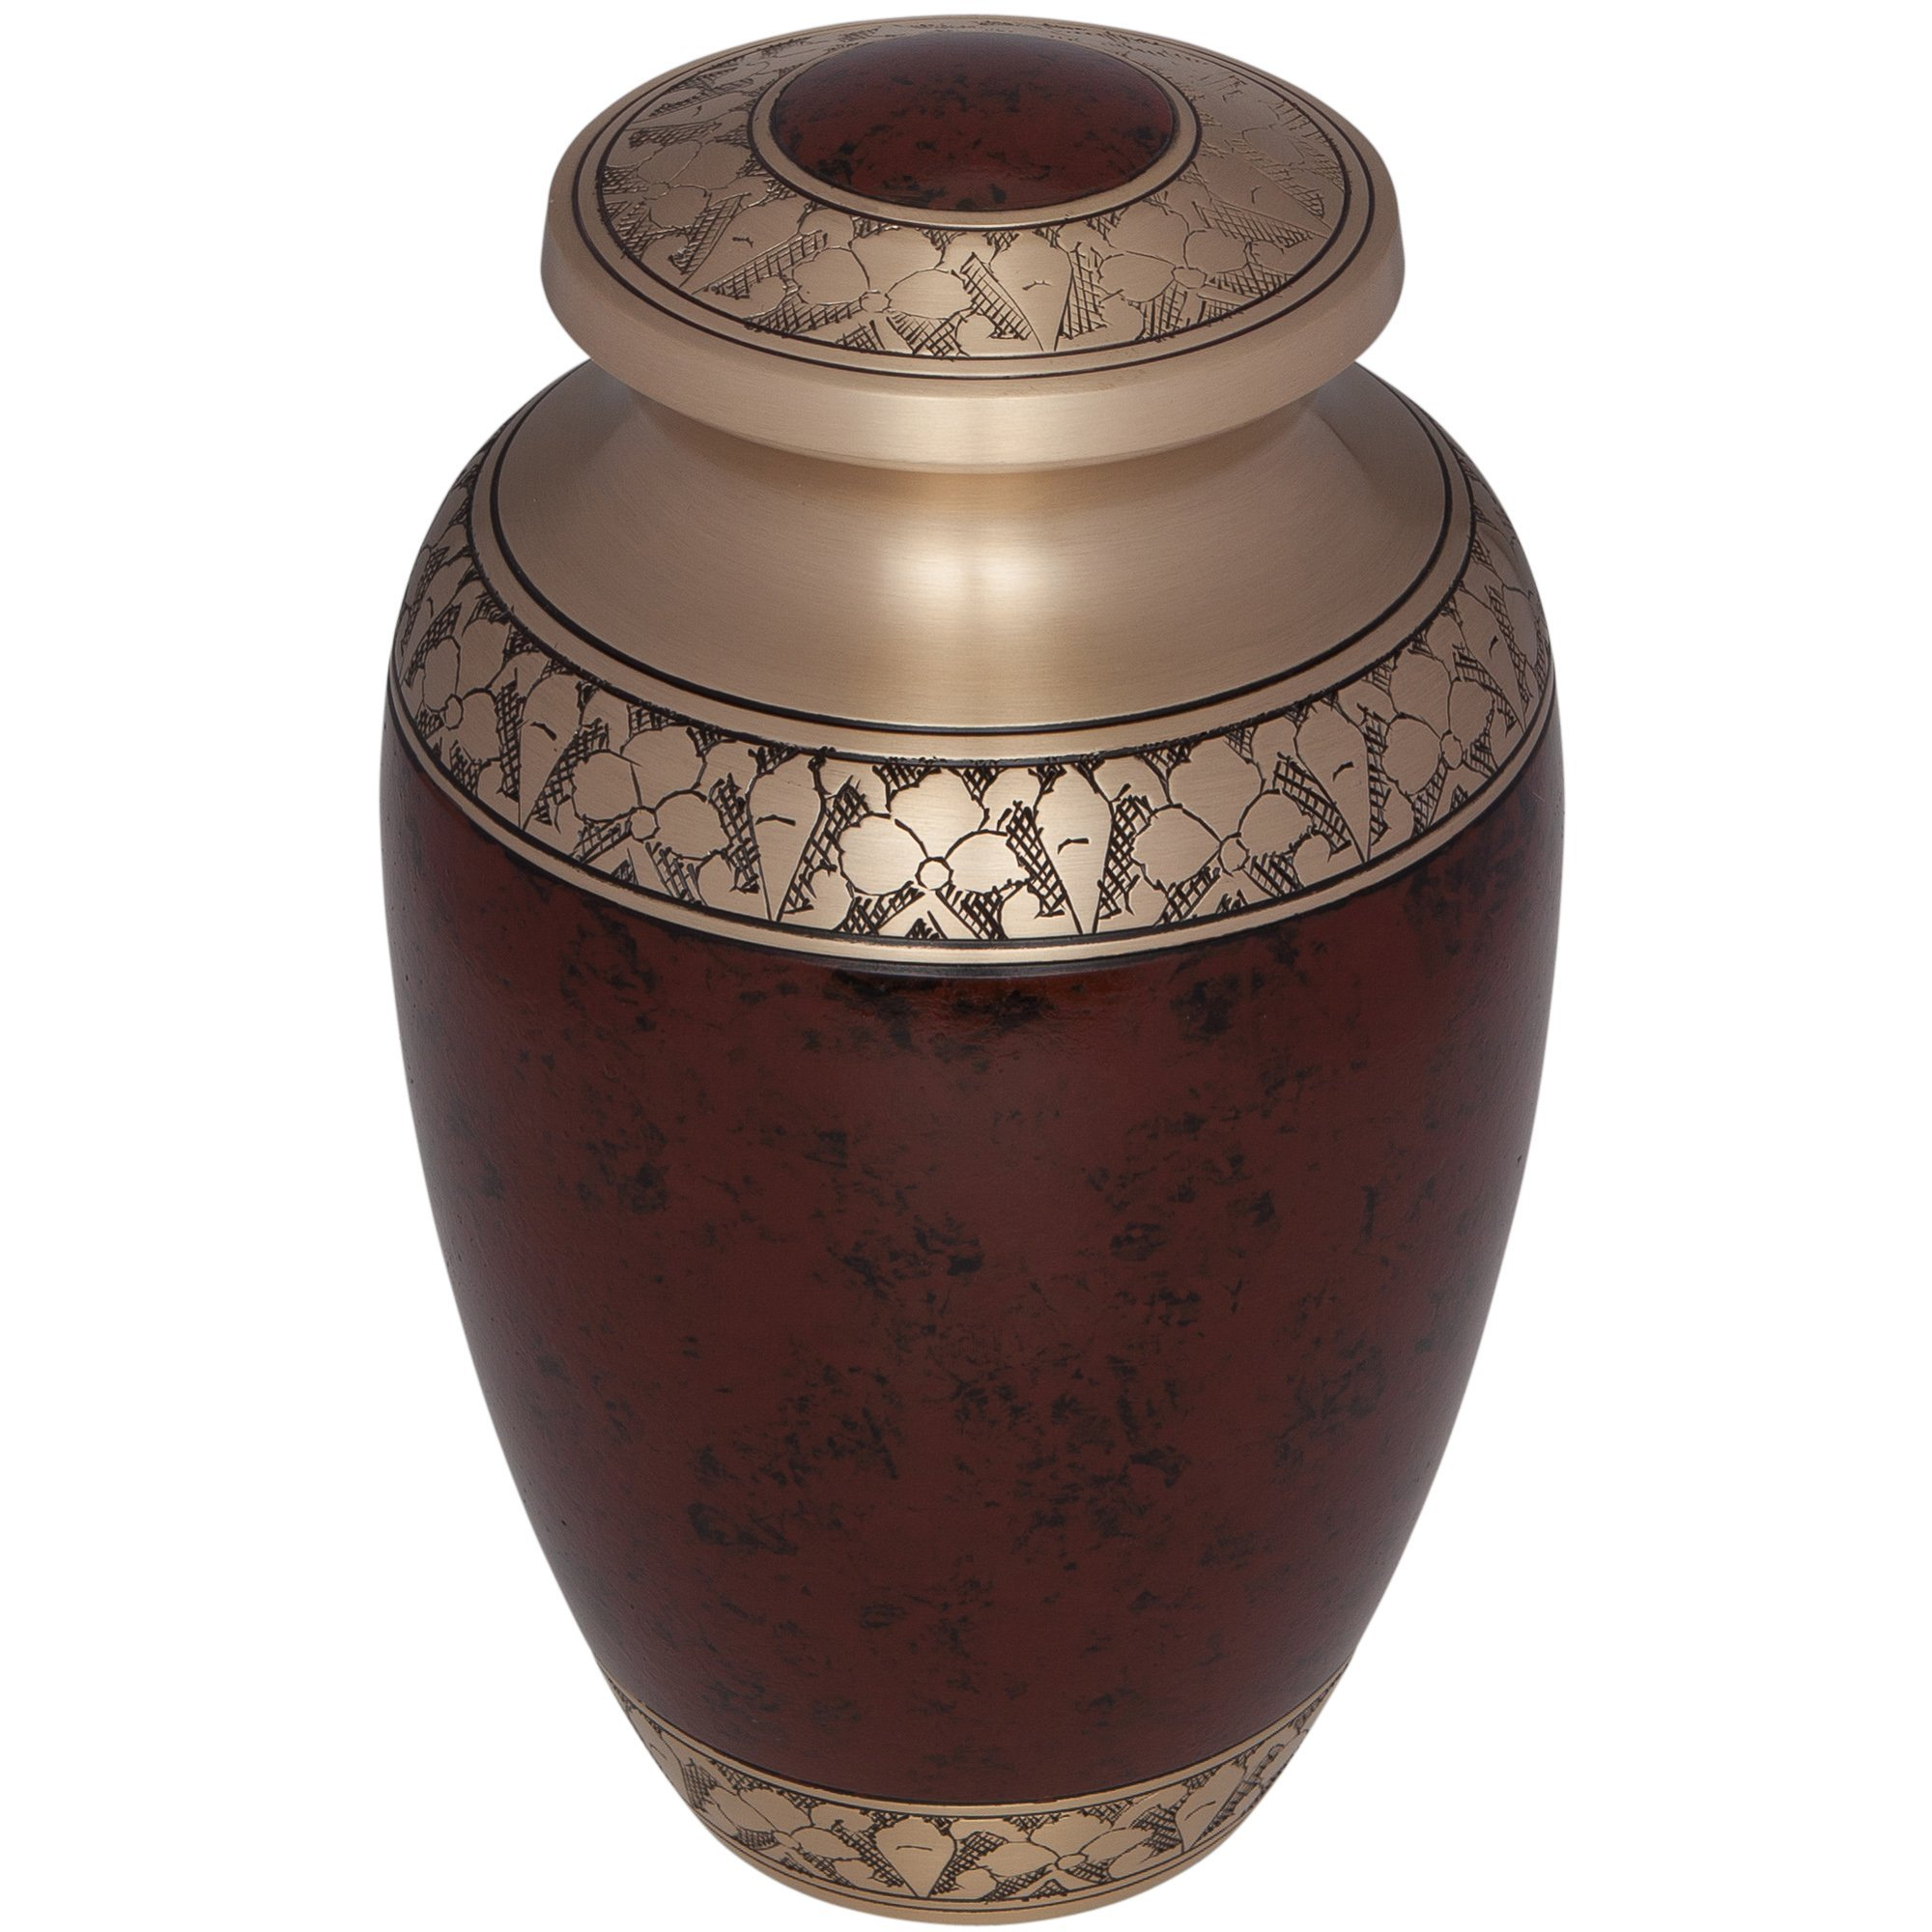 Brown Funeral Urn by Liliane Memorials - Cremation Urn for Human Ashes - Hand Made in Brass -Suitable for Cemetery Burial or Niche - Large Size fits remains of Adults up to 200 lbs- Tranquility Brown by Liliane Memorials (Image #3)